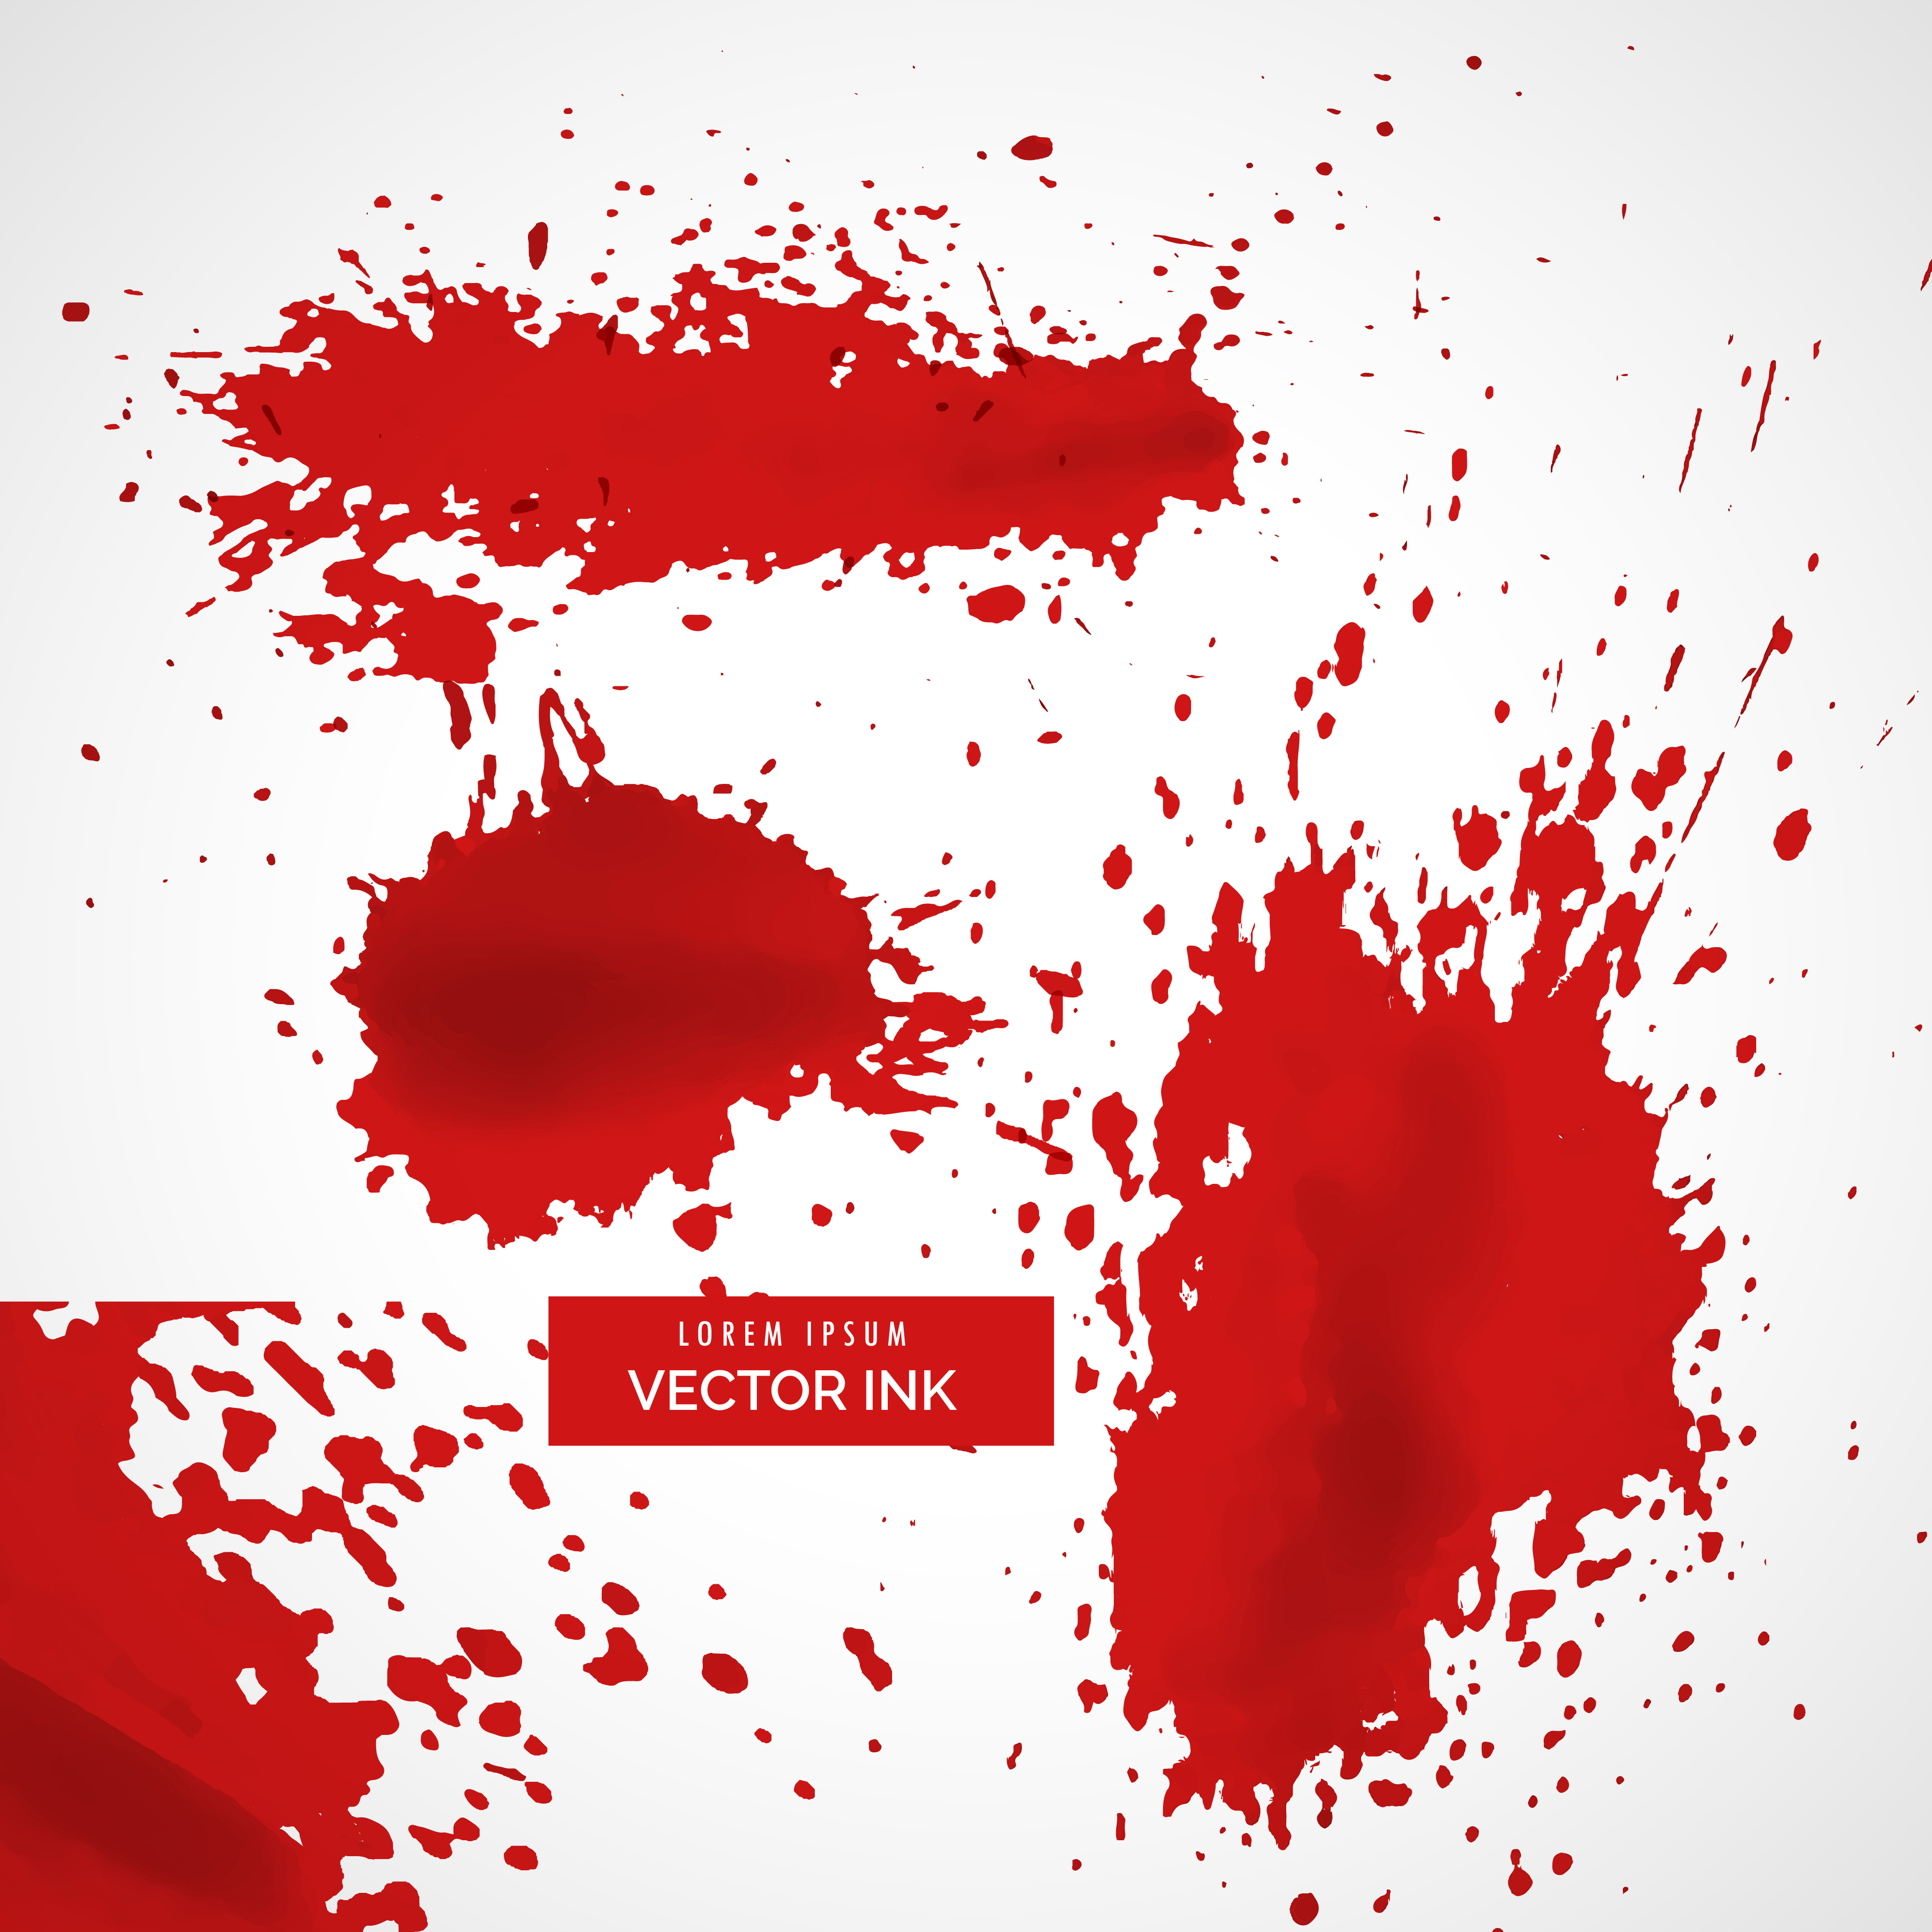 abstract red ink splatter texture background download